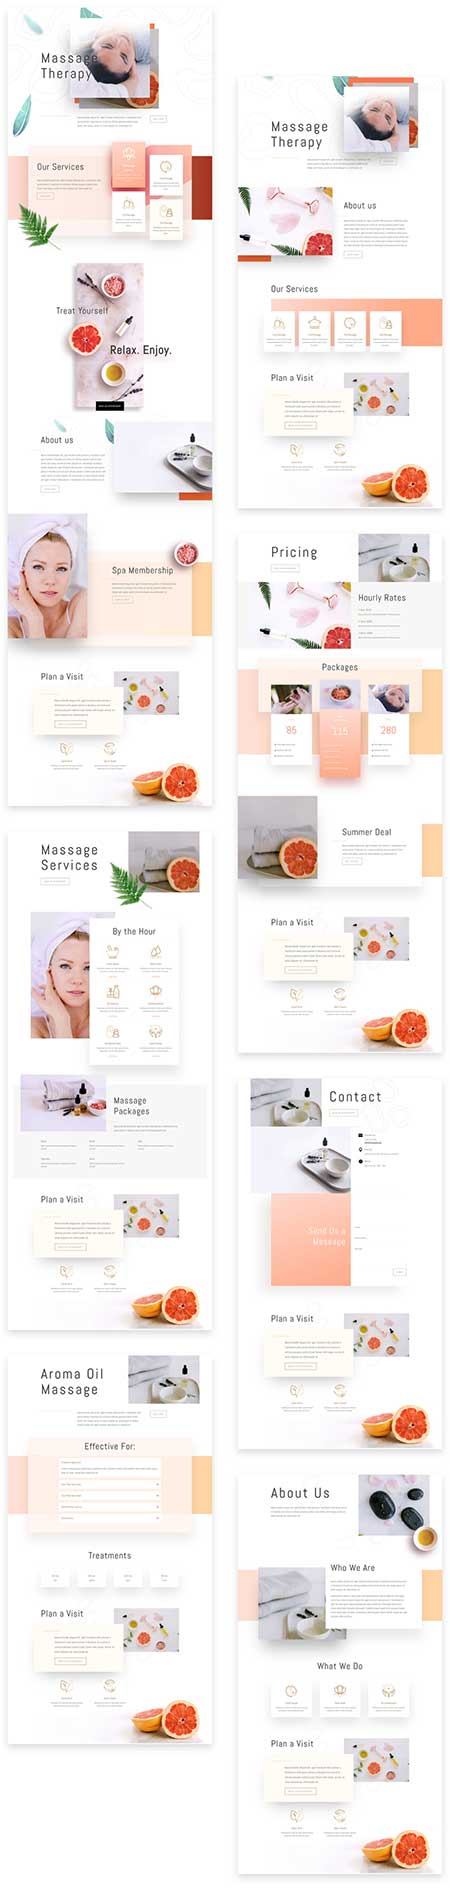 massage therapist site template